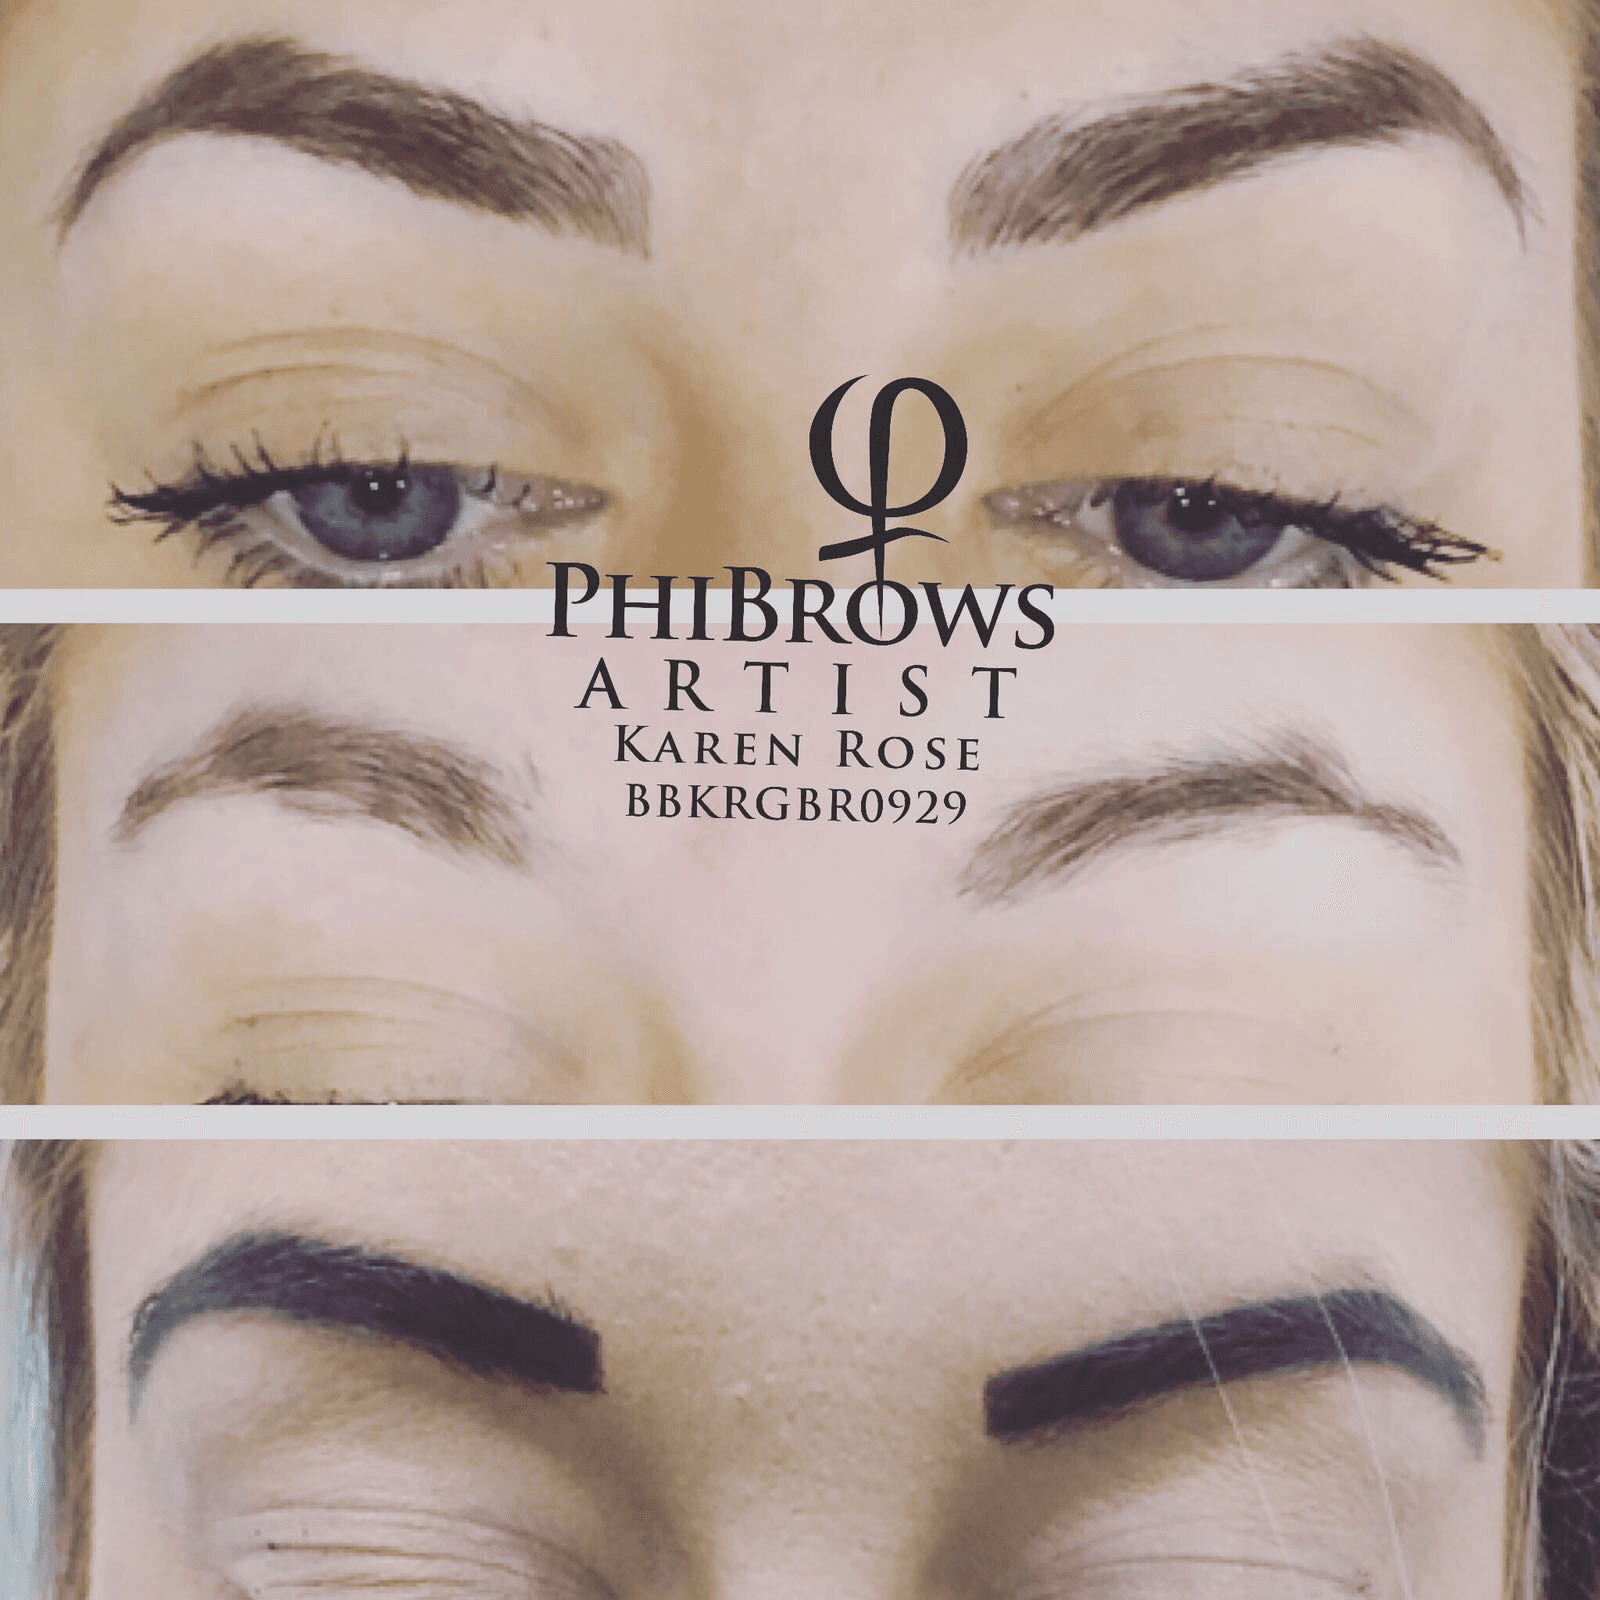 Phibrows treatments